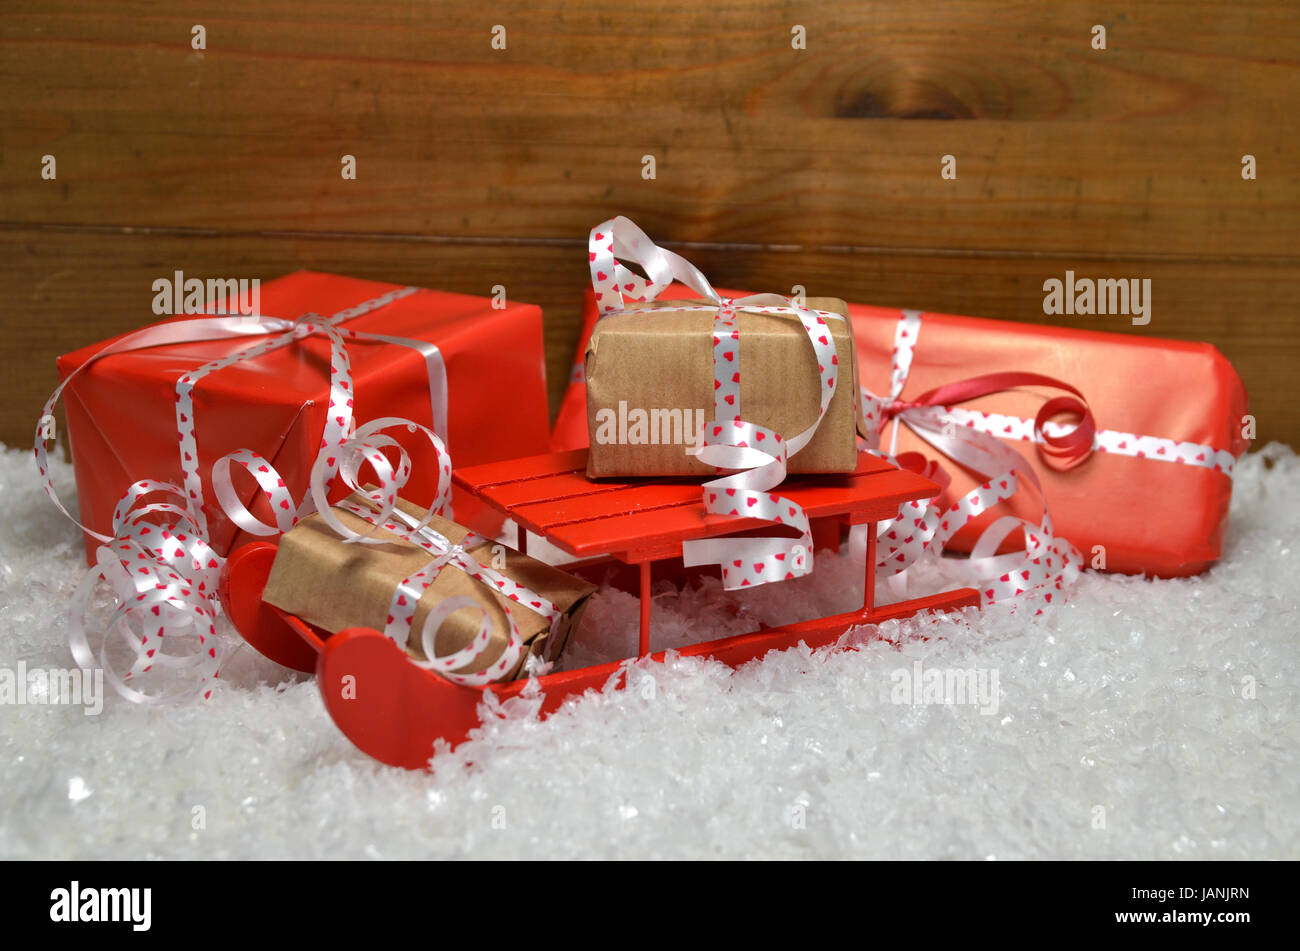 schlitten im schnee weihnachten dekoration advent stock photo 144305273 alamy. Black Bedroom Furniture Sets. Home Design Ideas